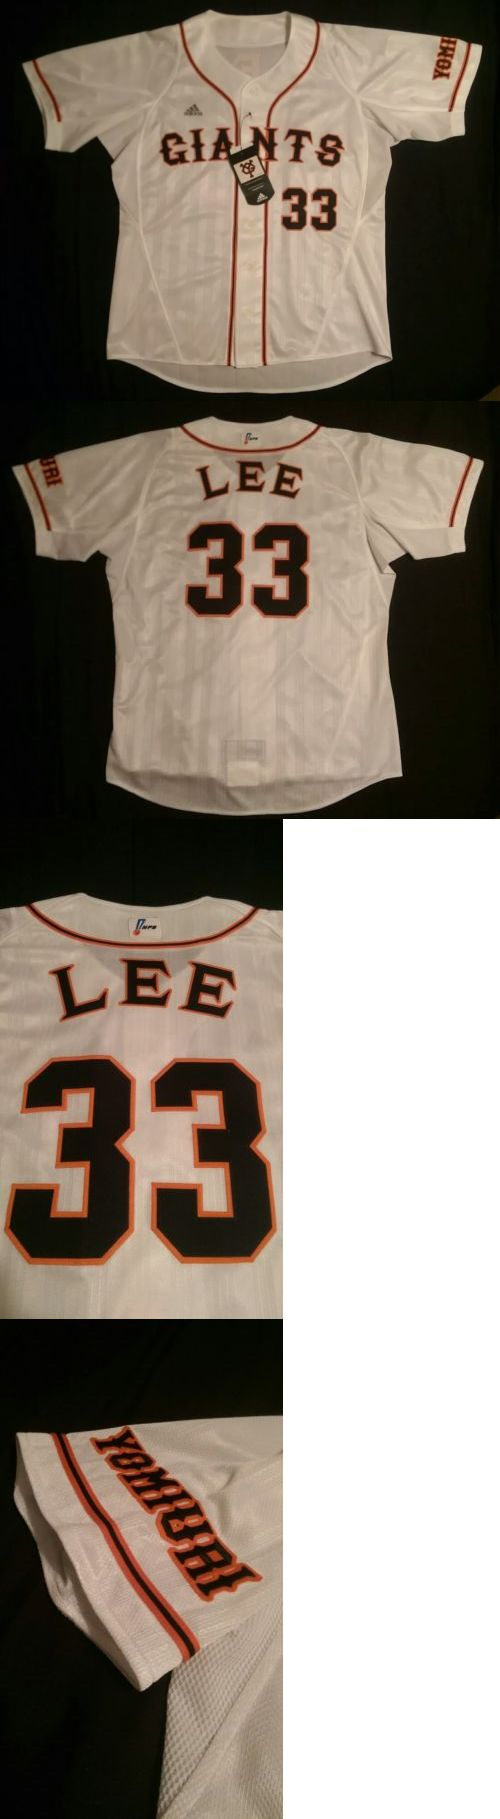 Baseball-Other 204: Nwt Authentic Adidas Tokyo Yomiuri Giants 2006 Jersey Lee Seung Yeop #33 Med. -> BUY IT NOW ONLY: $400 on eBay!